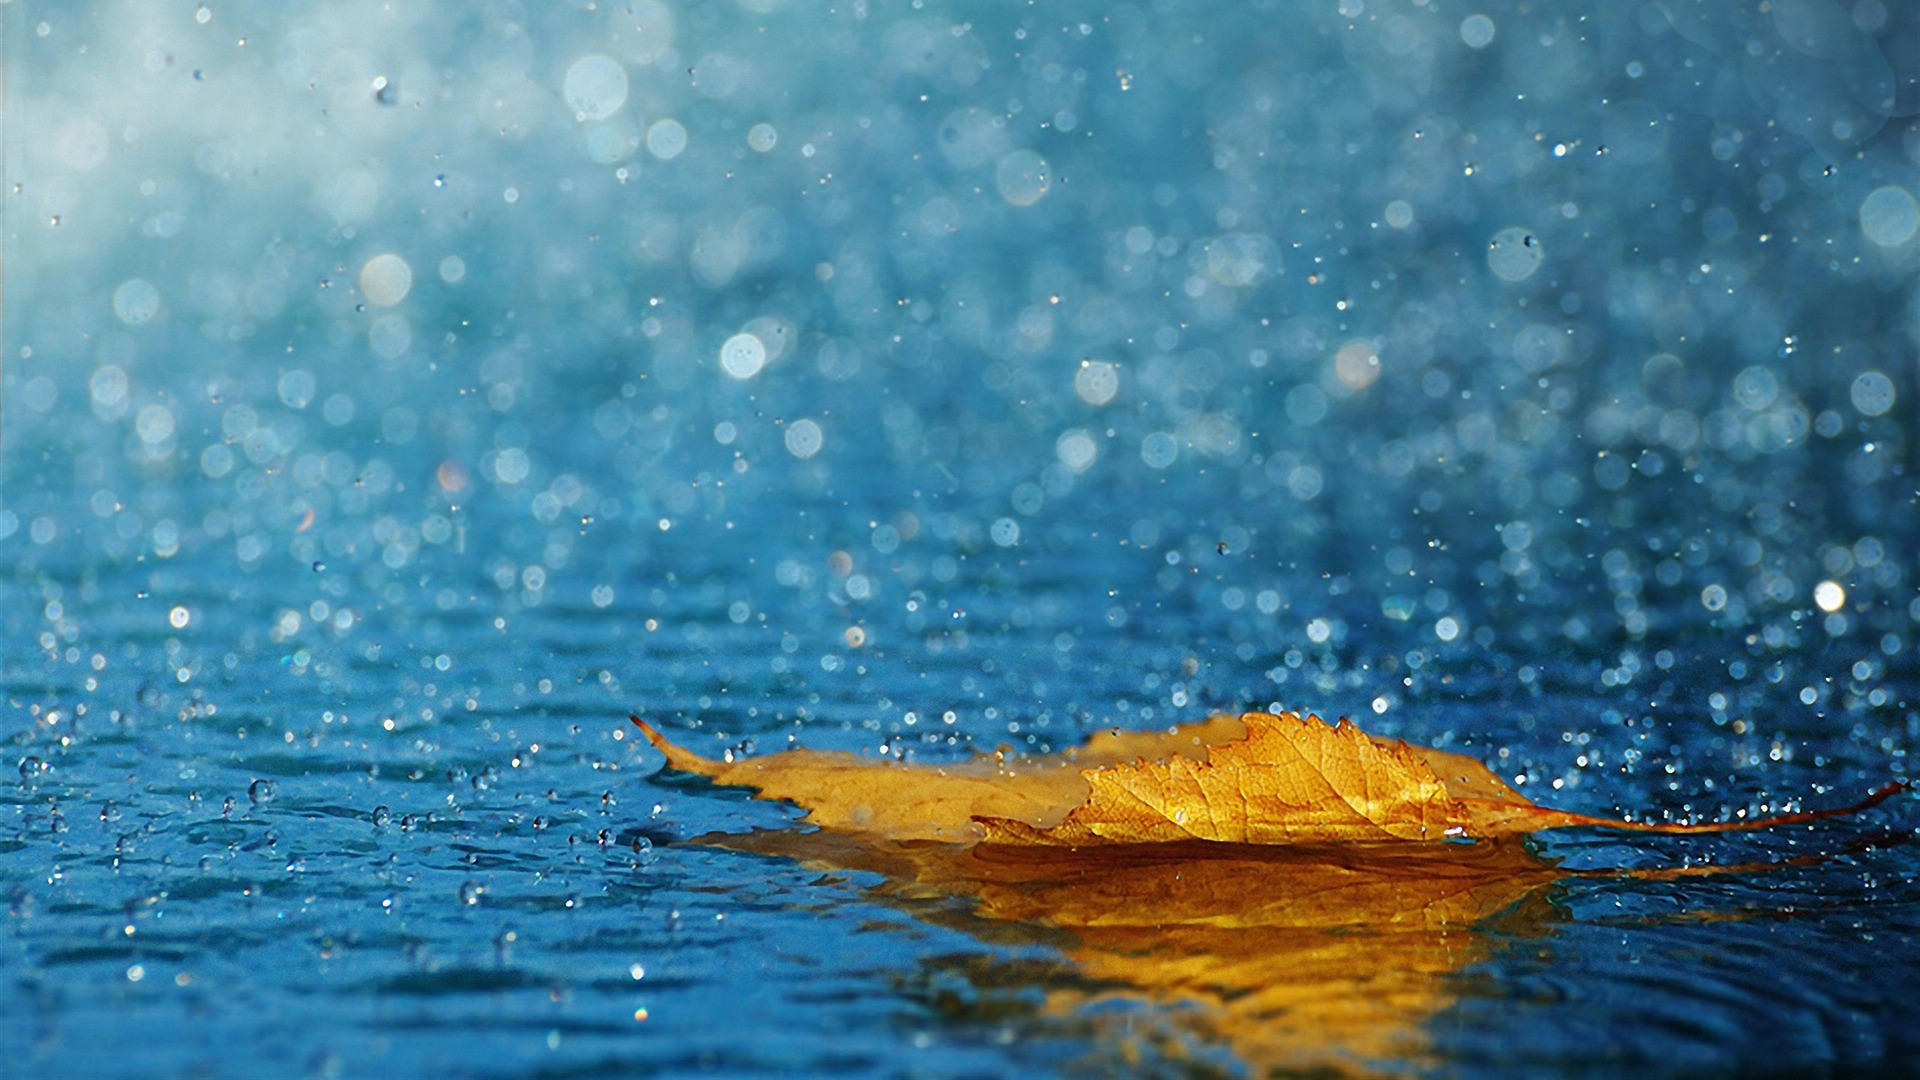 Rain drops in Summer - Top 10 HD Raindrop Wallpapers for Your Desktop